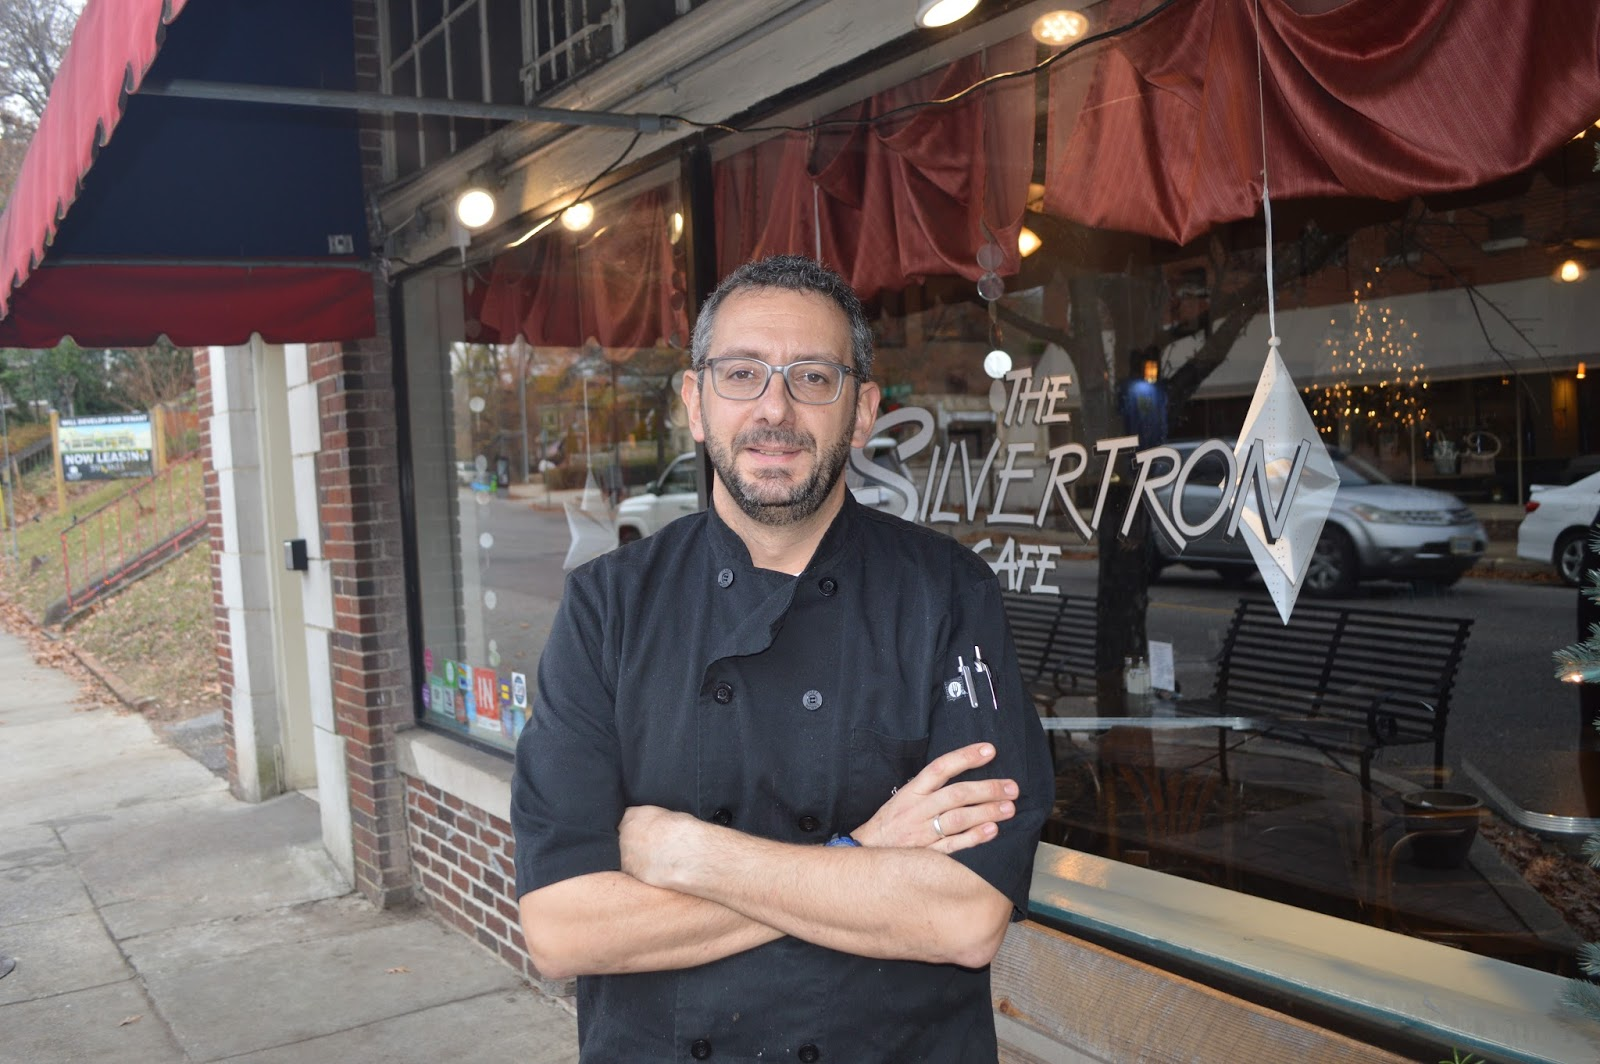 Marco Morosini in front of Silvertron Cafe